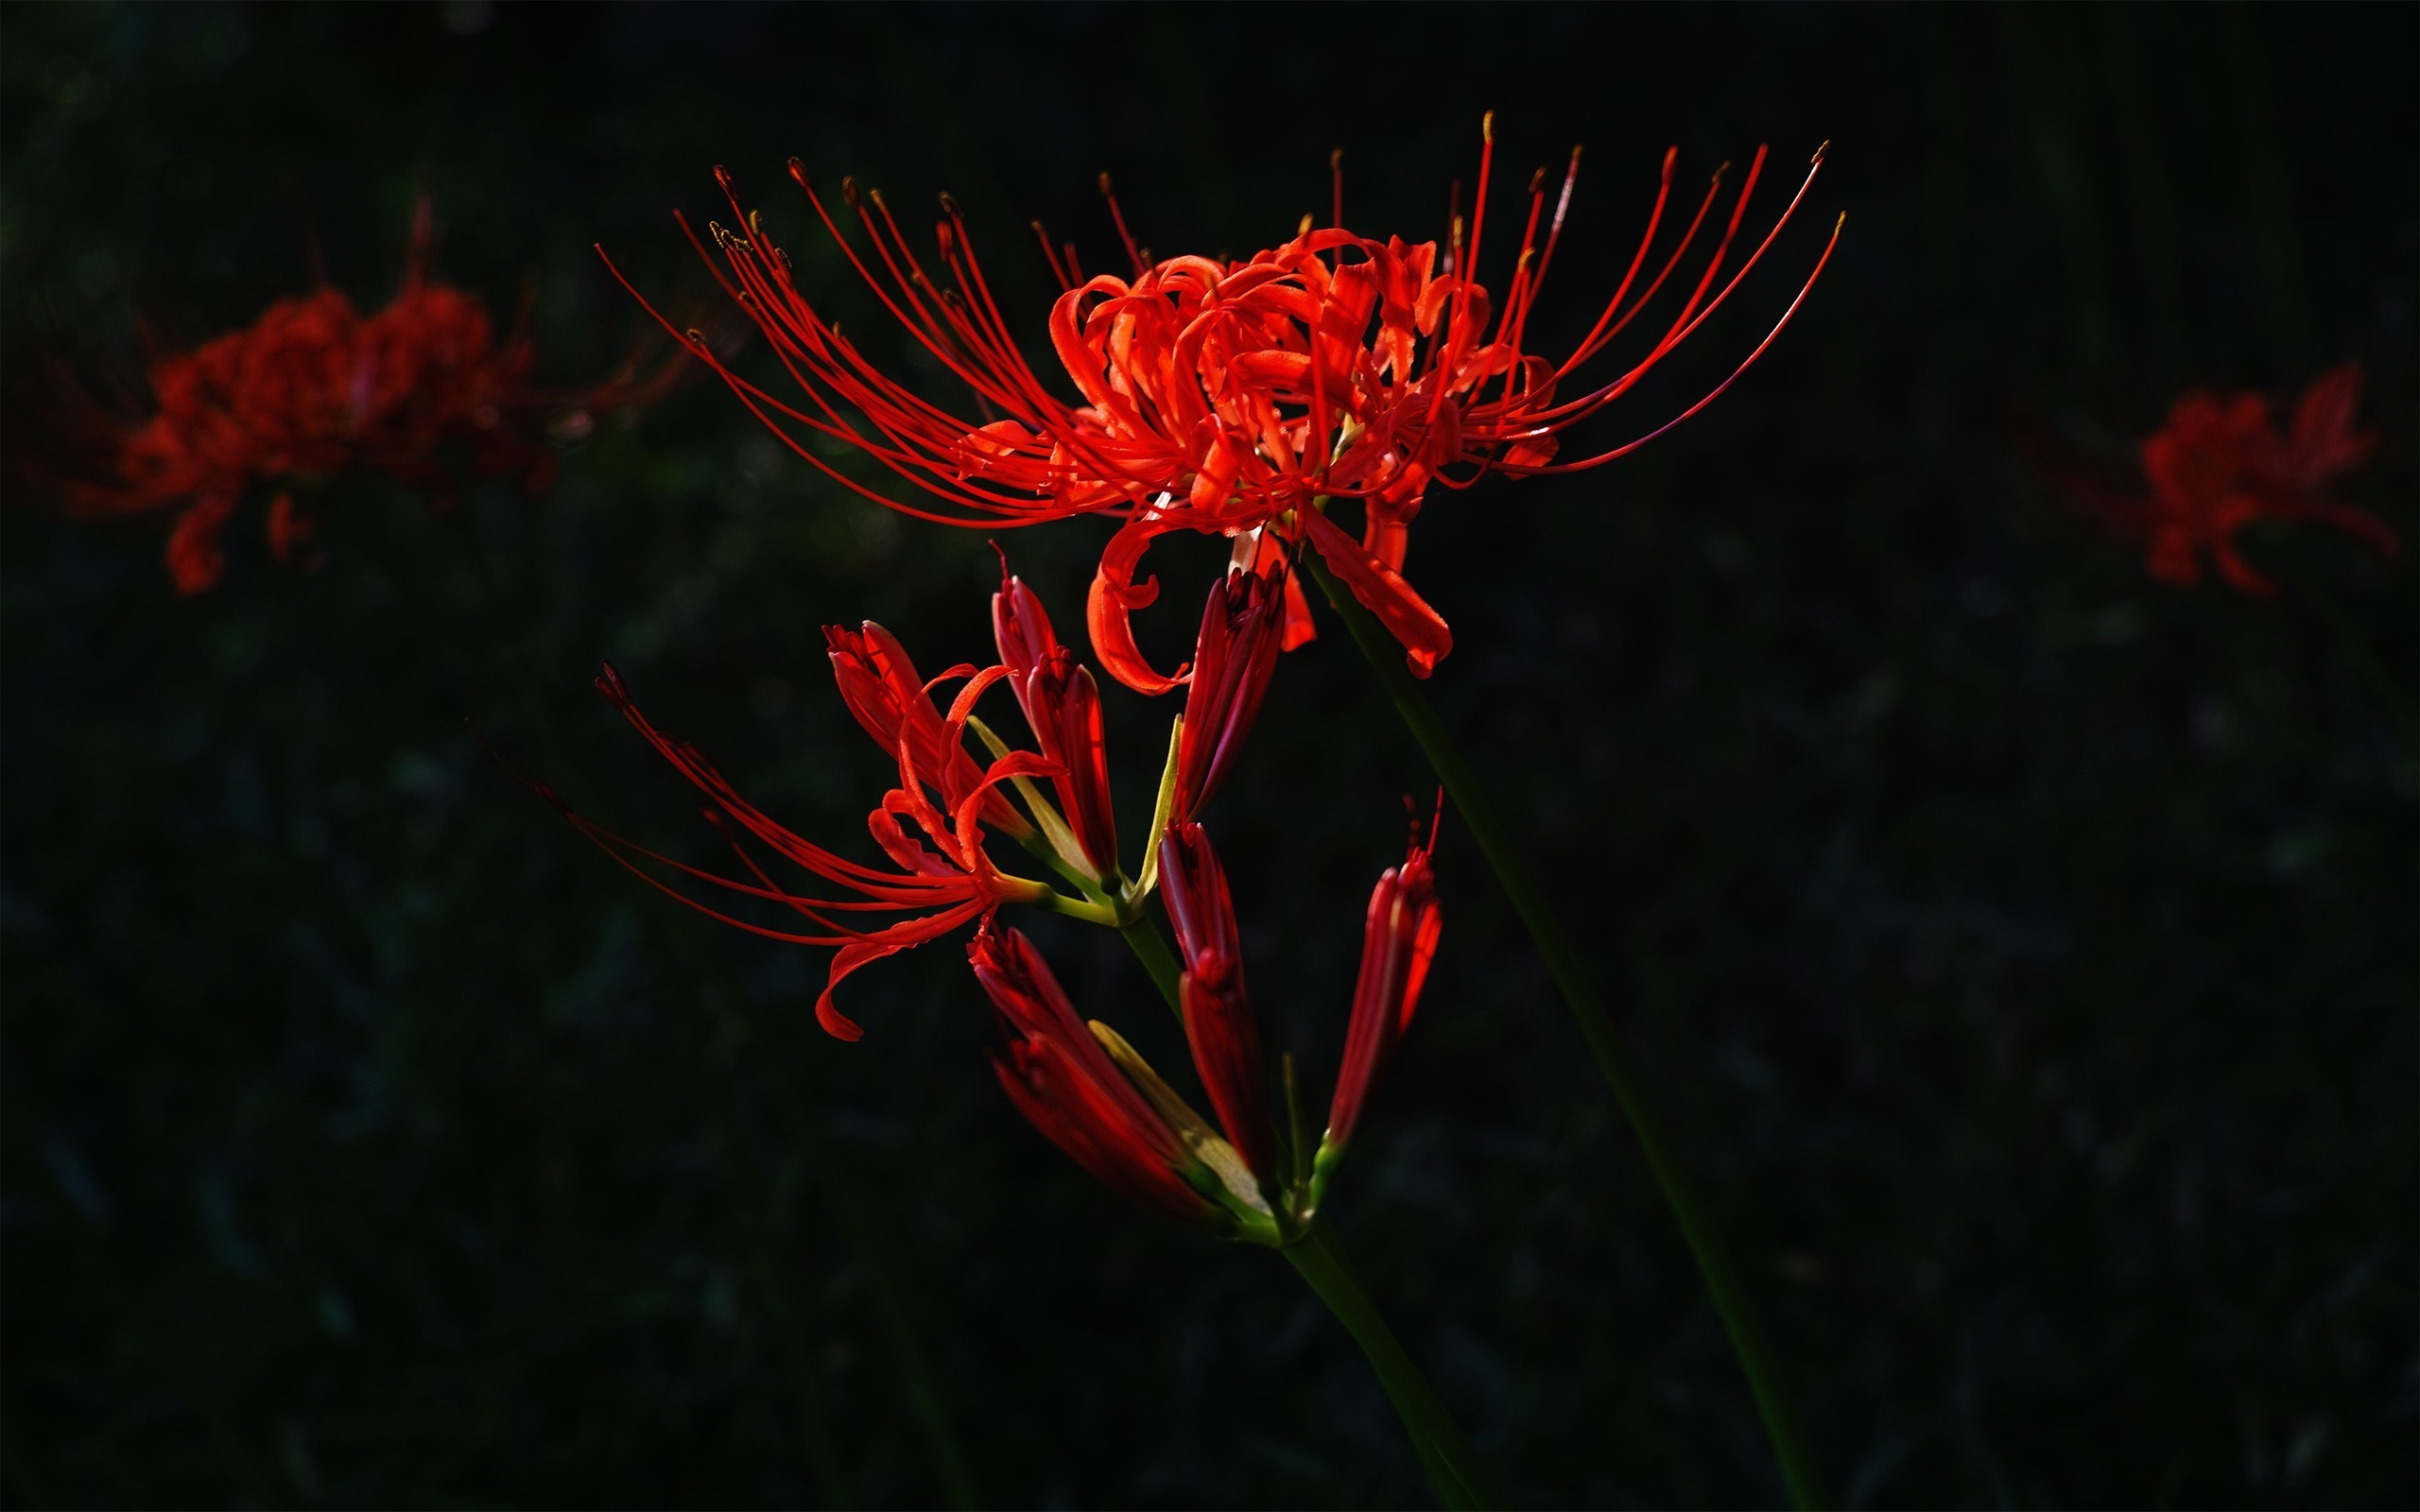 Red flower on dark background wallpapers and images – wallpapers .